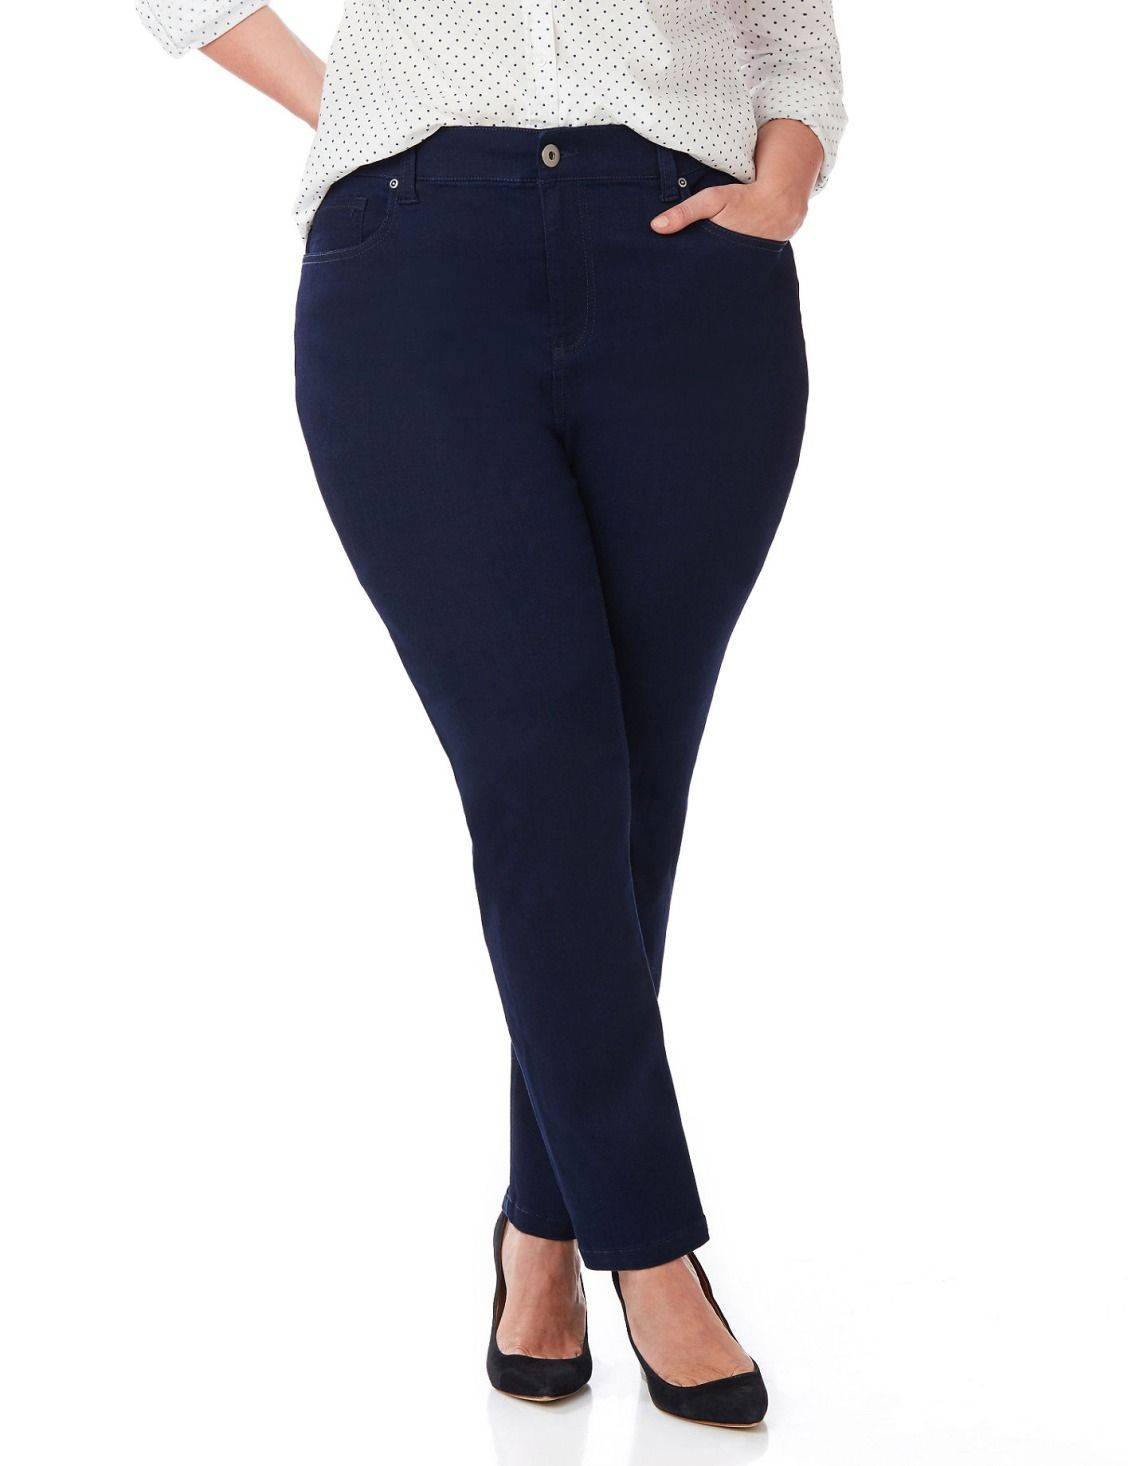 Sateen Stretch Pant | Catherines Our sleek, sateen jean is the perfect complement to your favorite tops and jackets. Elastic insets at the waistband stretch for a comfortable fit. Zip opening with button closure. Five-pocket design. Straight leg. Catherines pants are specifically designed with the plus size woman in mind.